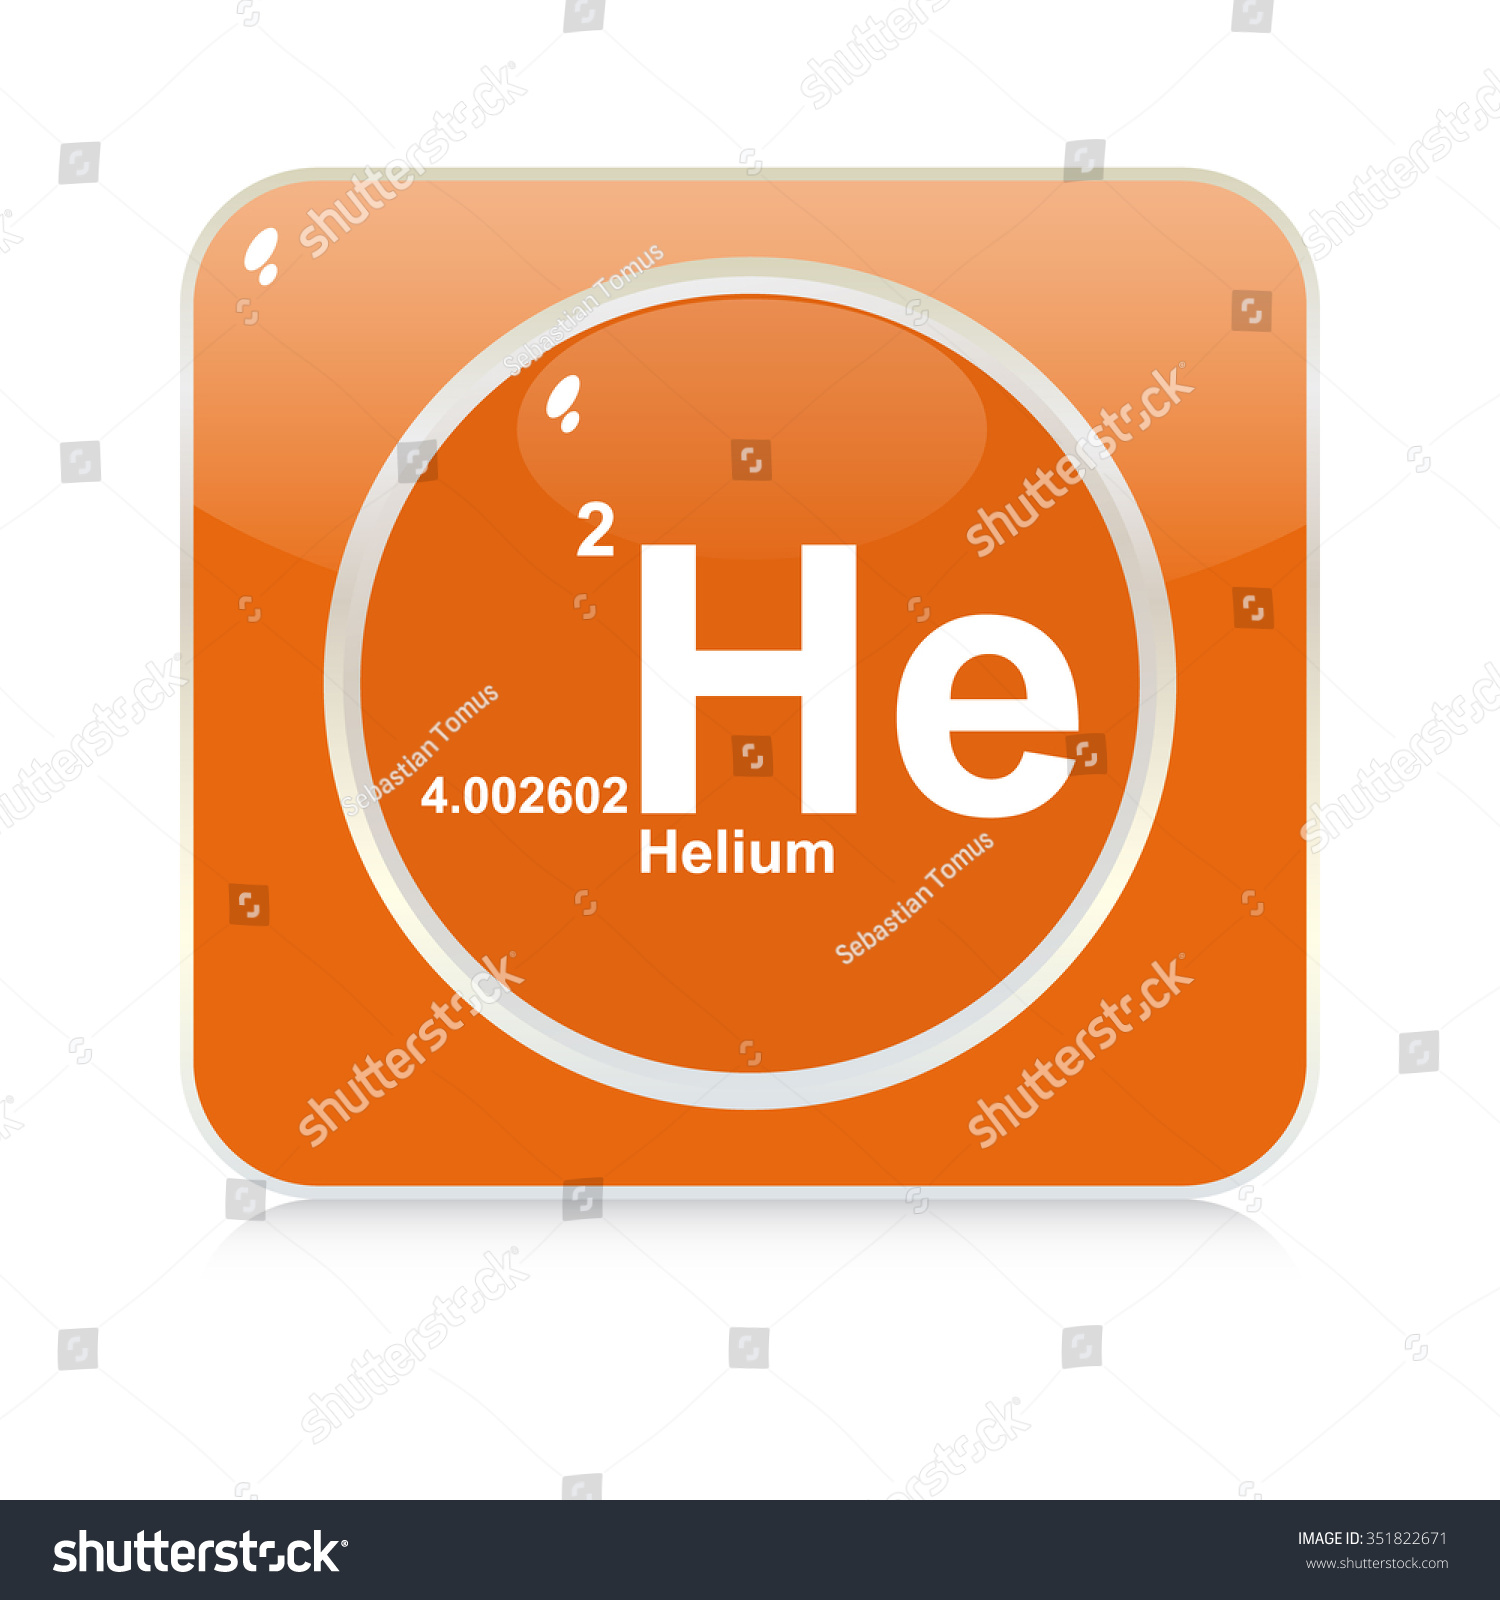 Helium chemical element button stock vector 351822671 shutterstock helium chemical element button buycottarizona